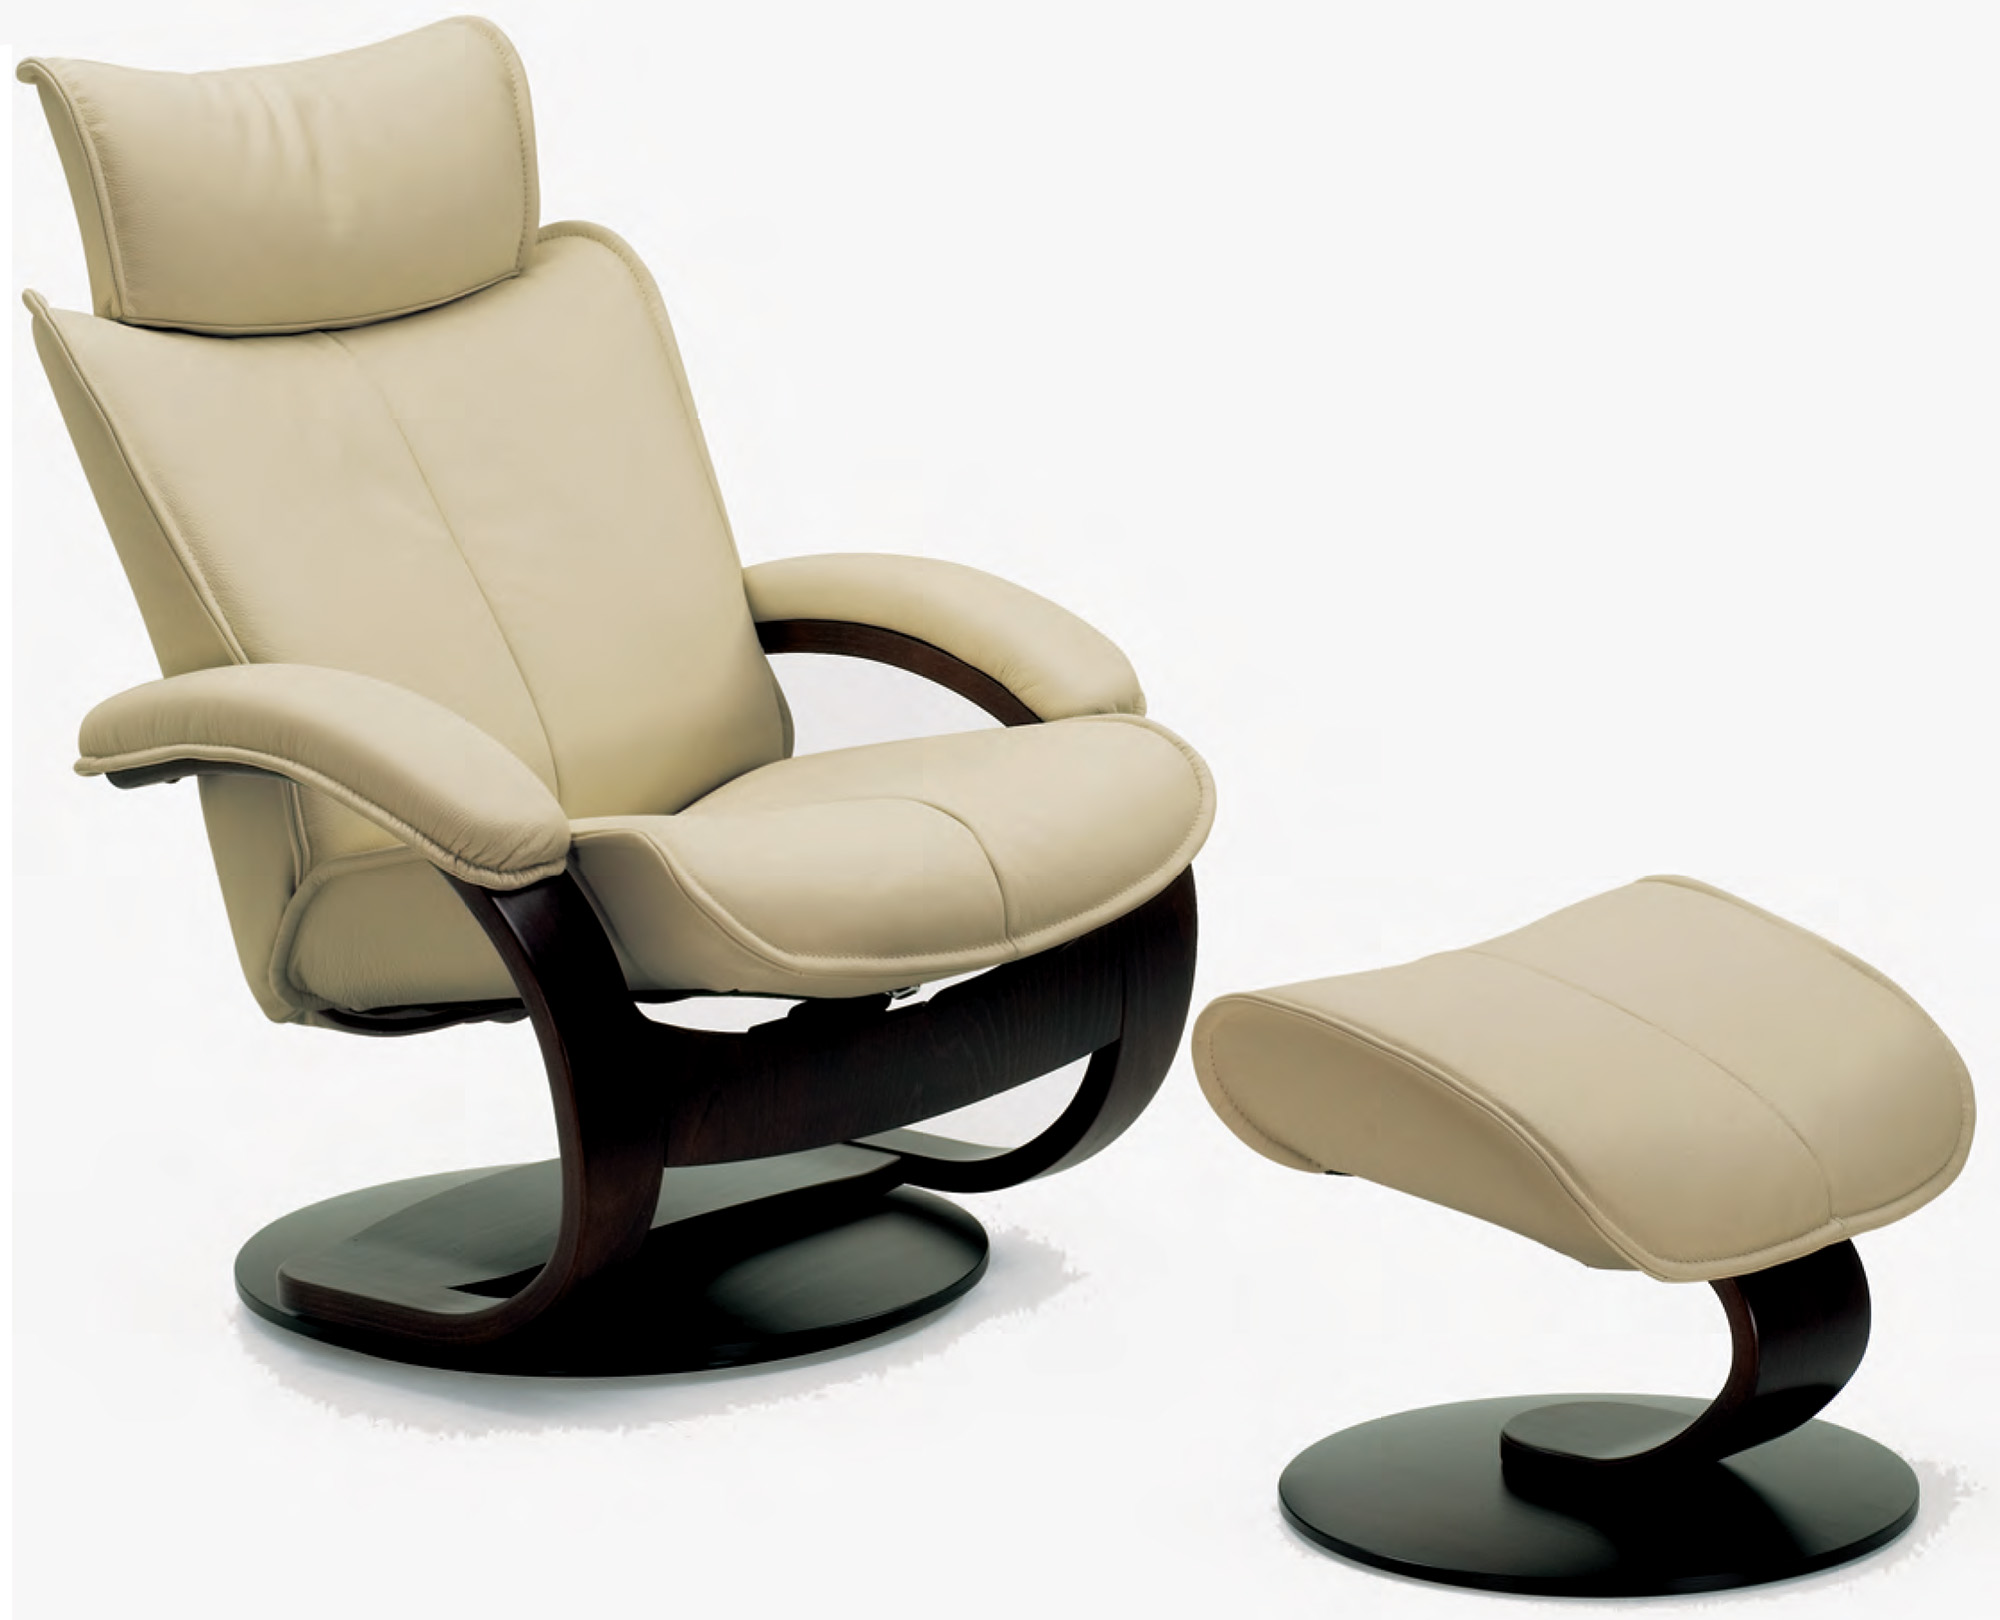 Fjords Ona Ergonomic Leather Recliner Chair And Ottoman Scandinavian Lounger